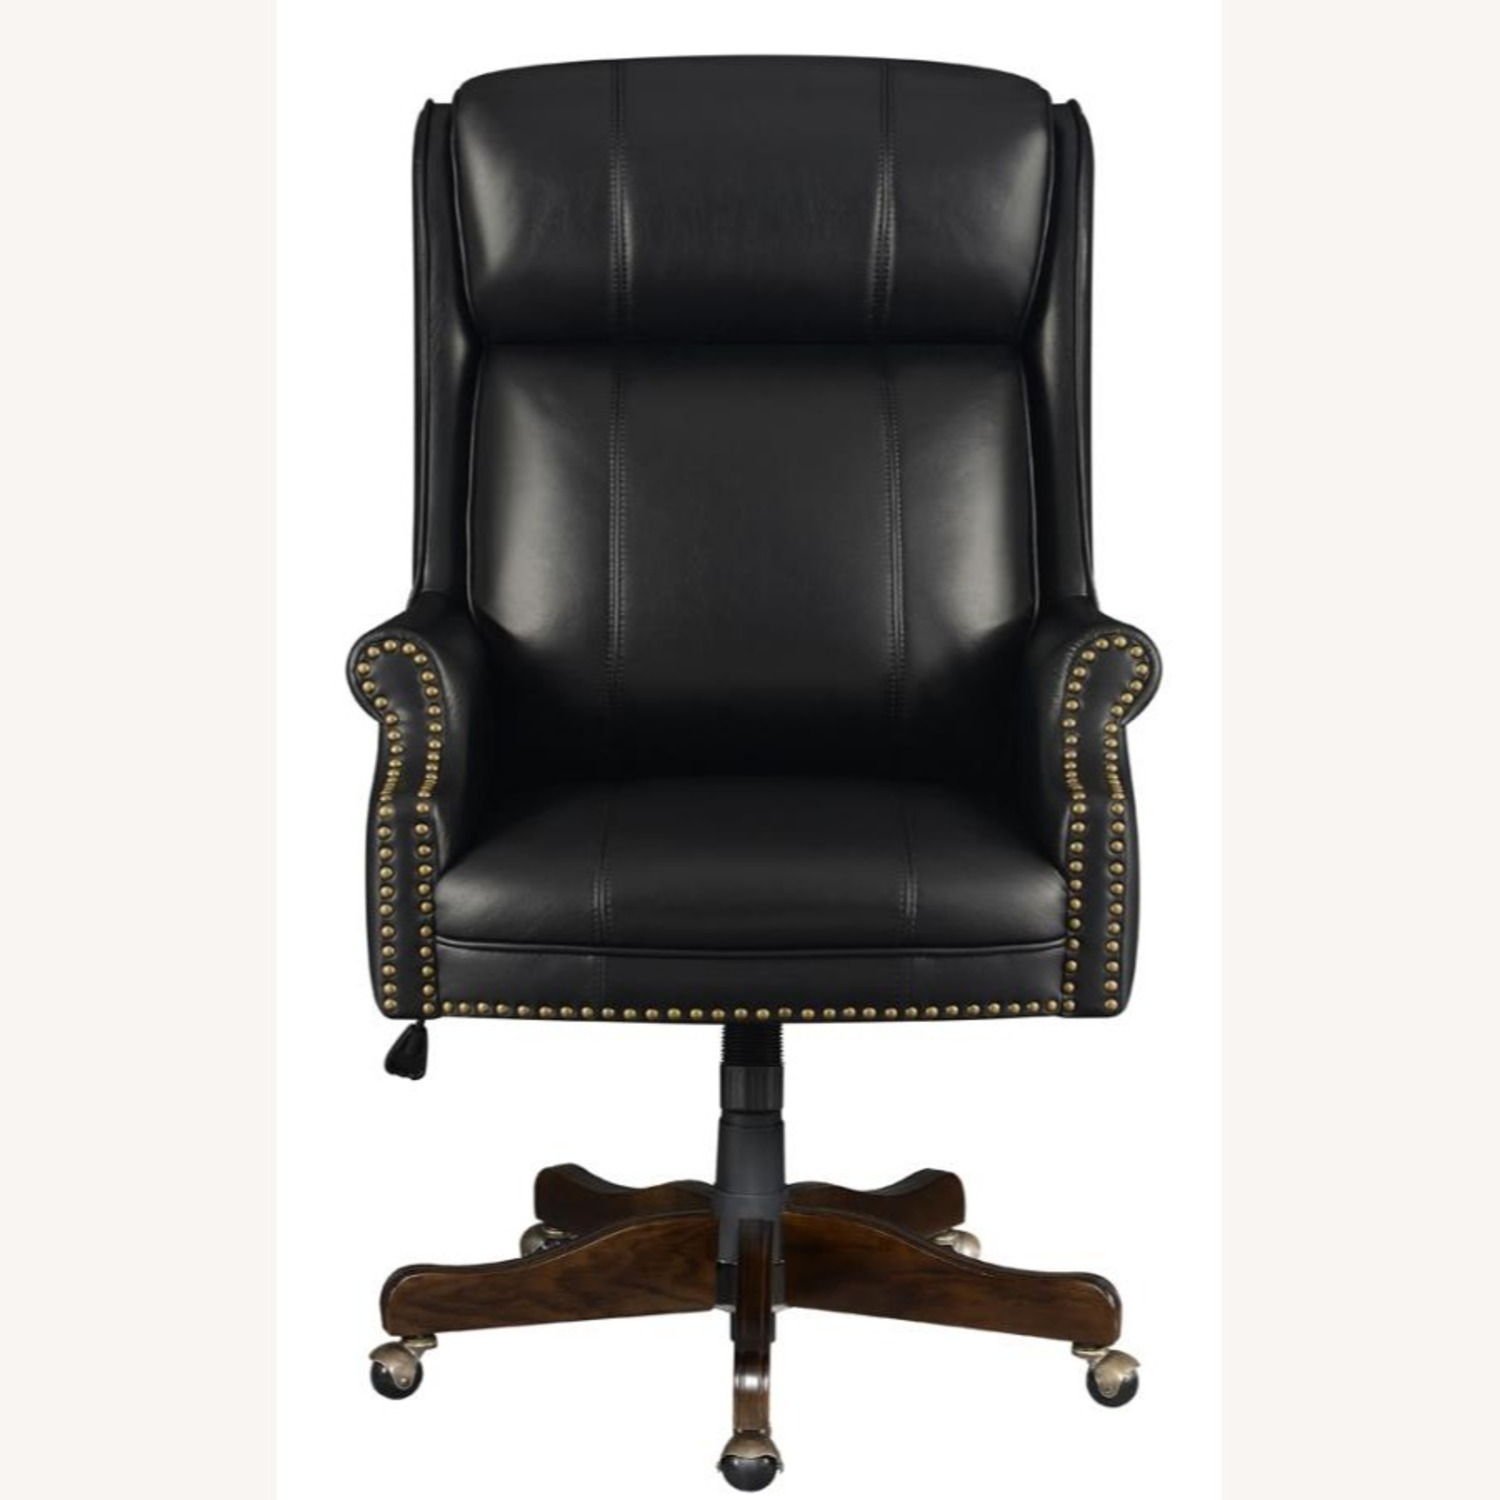 Office Chair Upholstered In Black Leatherette - image-1